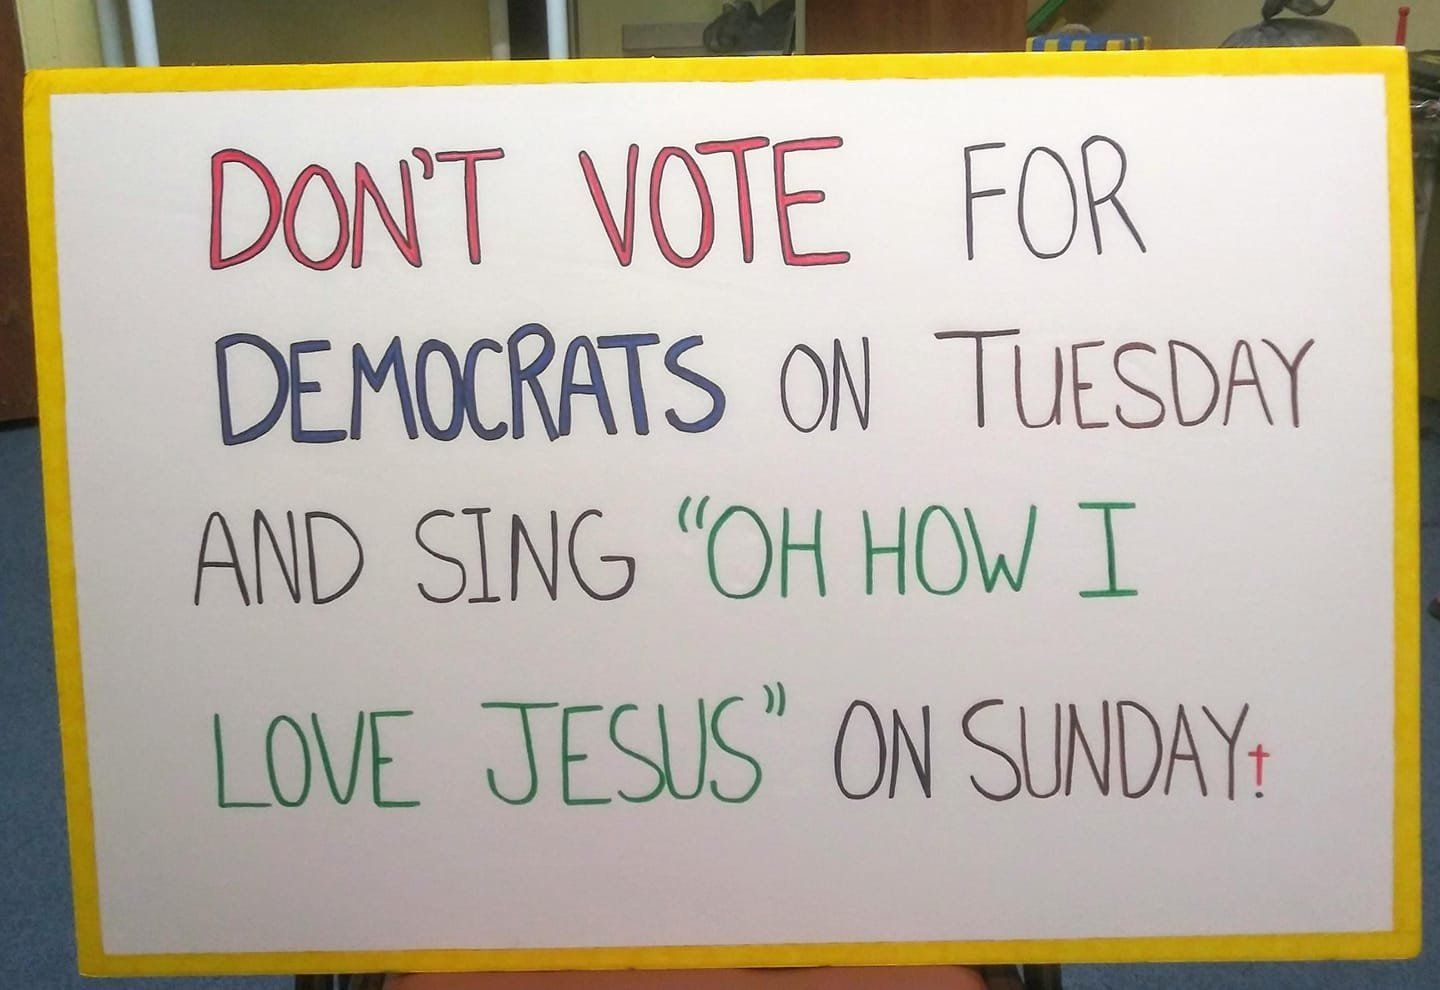 Al Carlisle, thesenior pastor of Grace of God Church in New Port Richey, Florida, posted a photo of this sign on his Fa